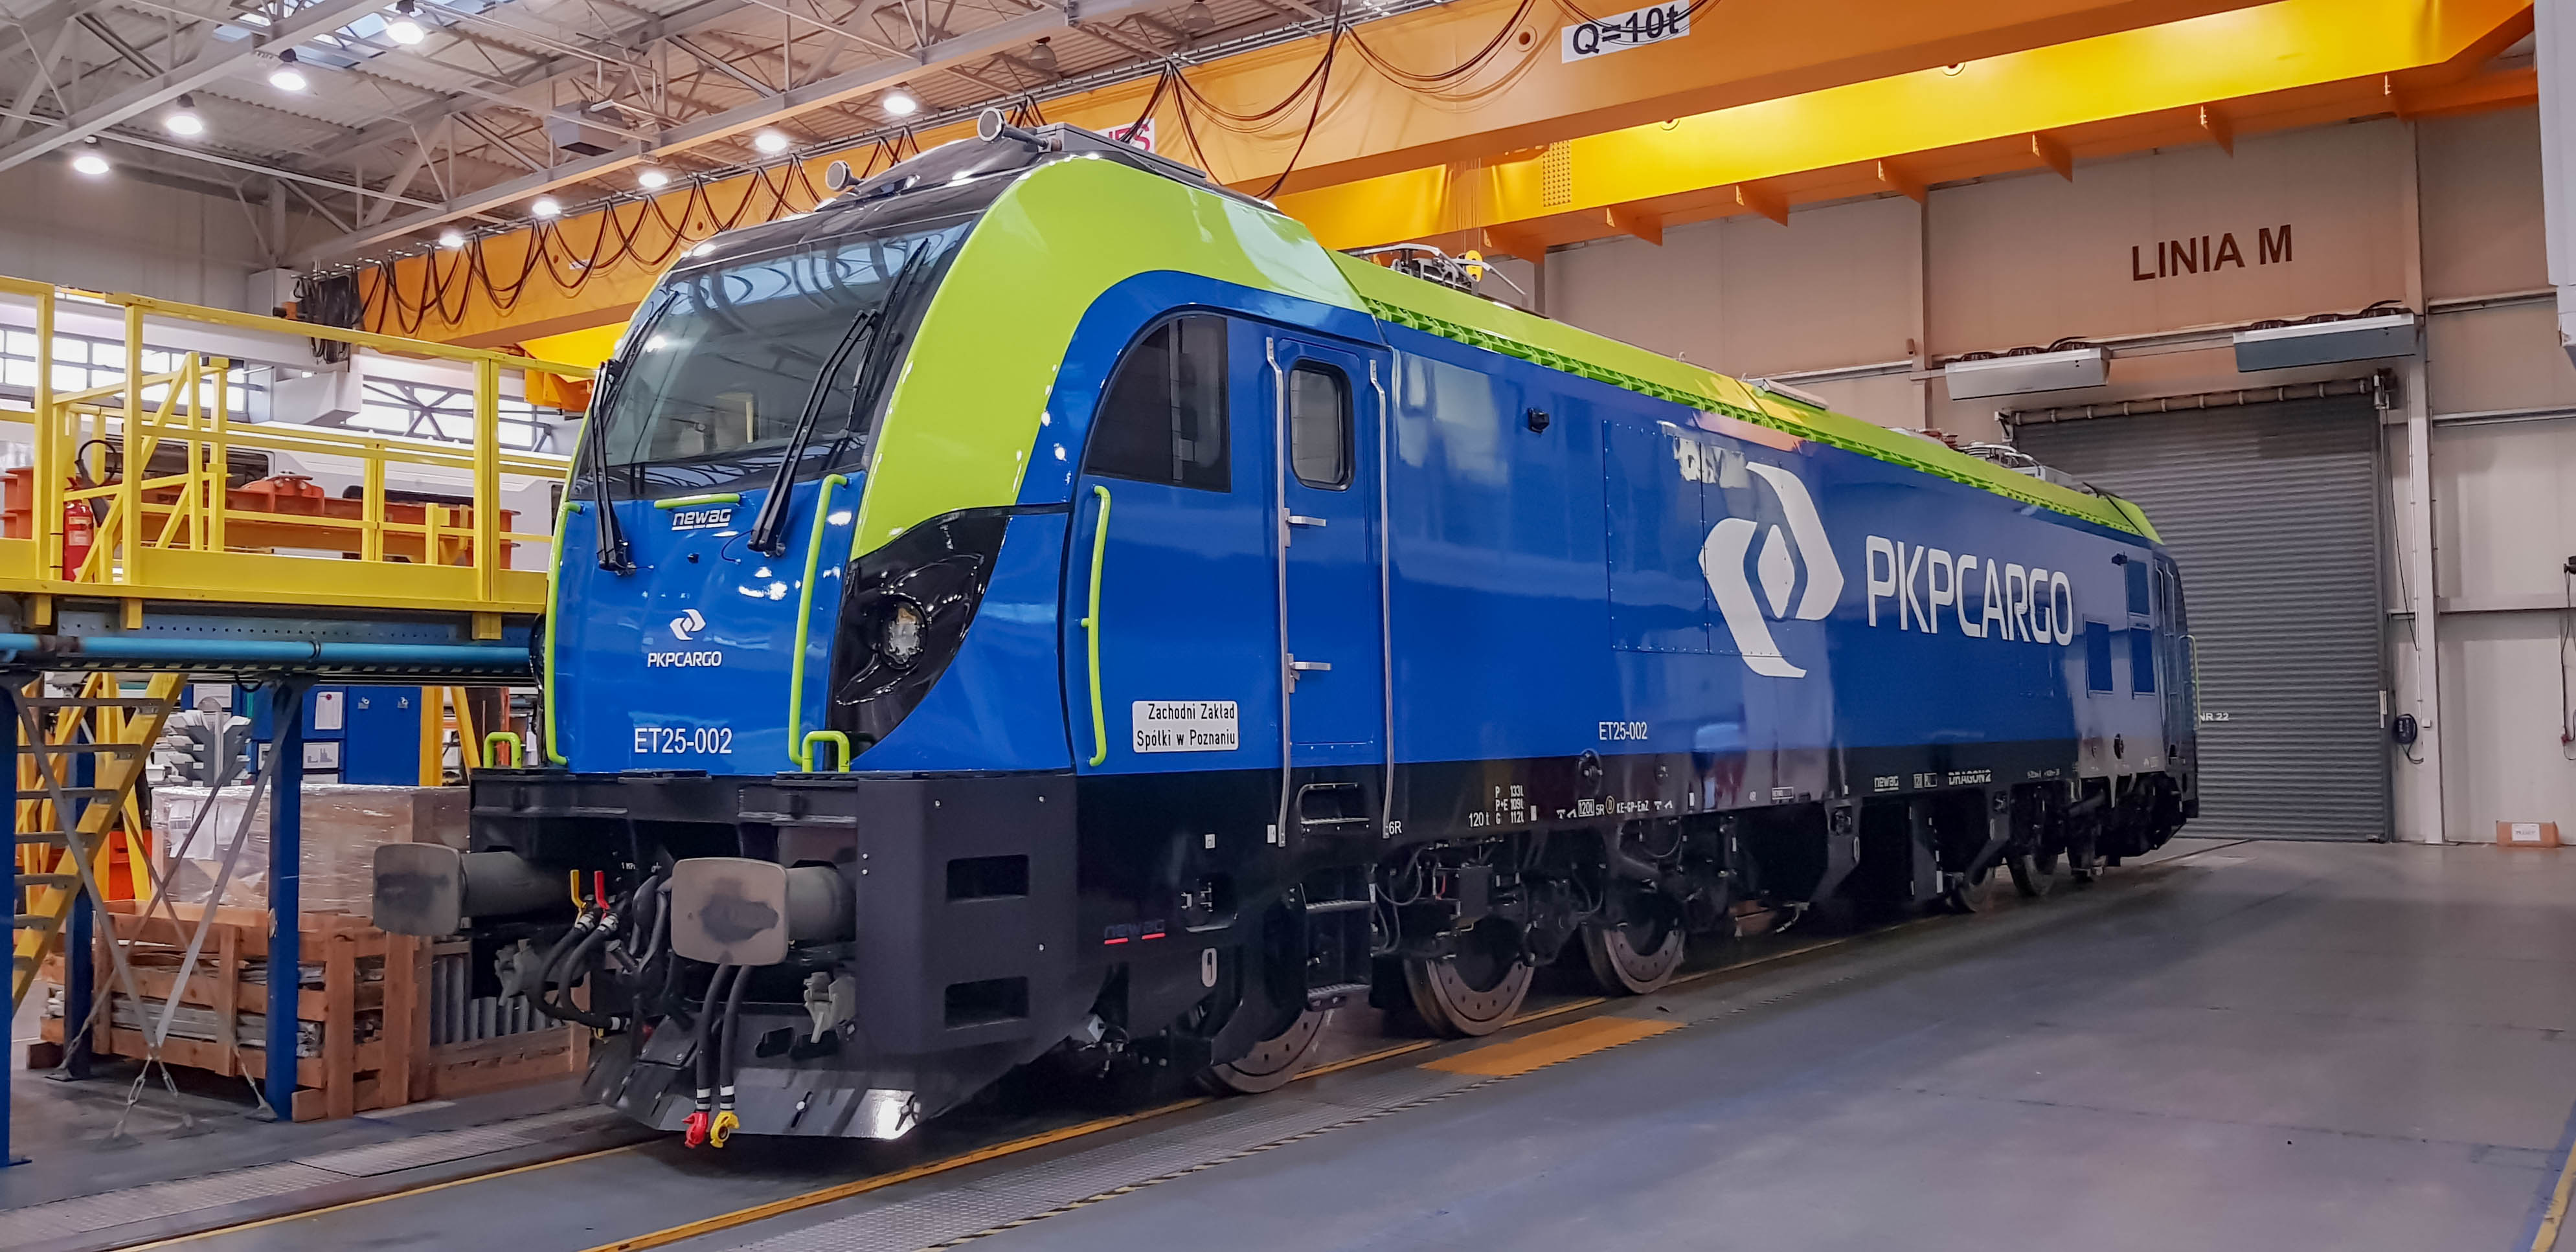 Three DRAGON 2 Locos for PKP Cargo